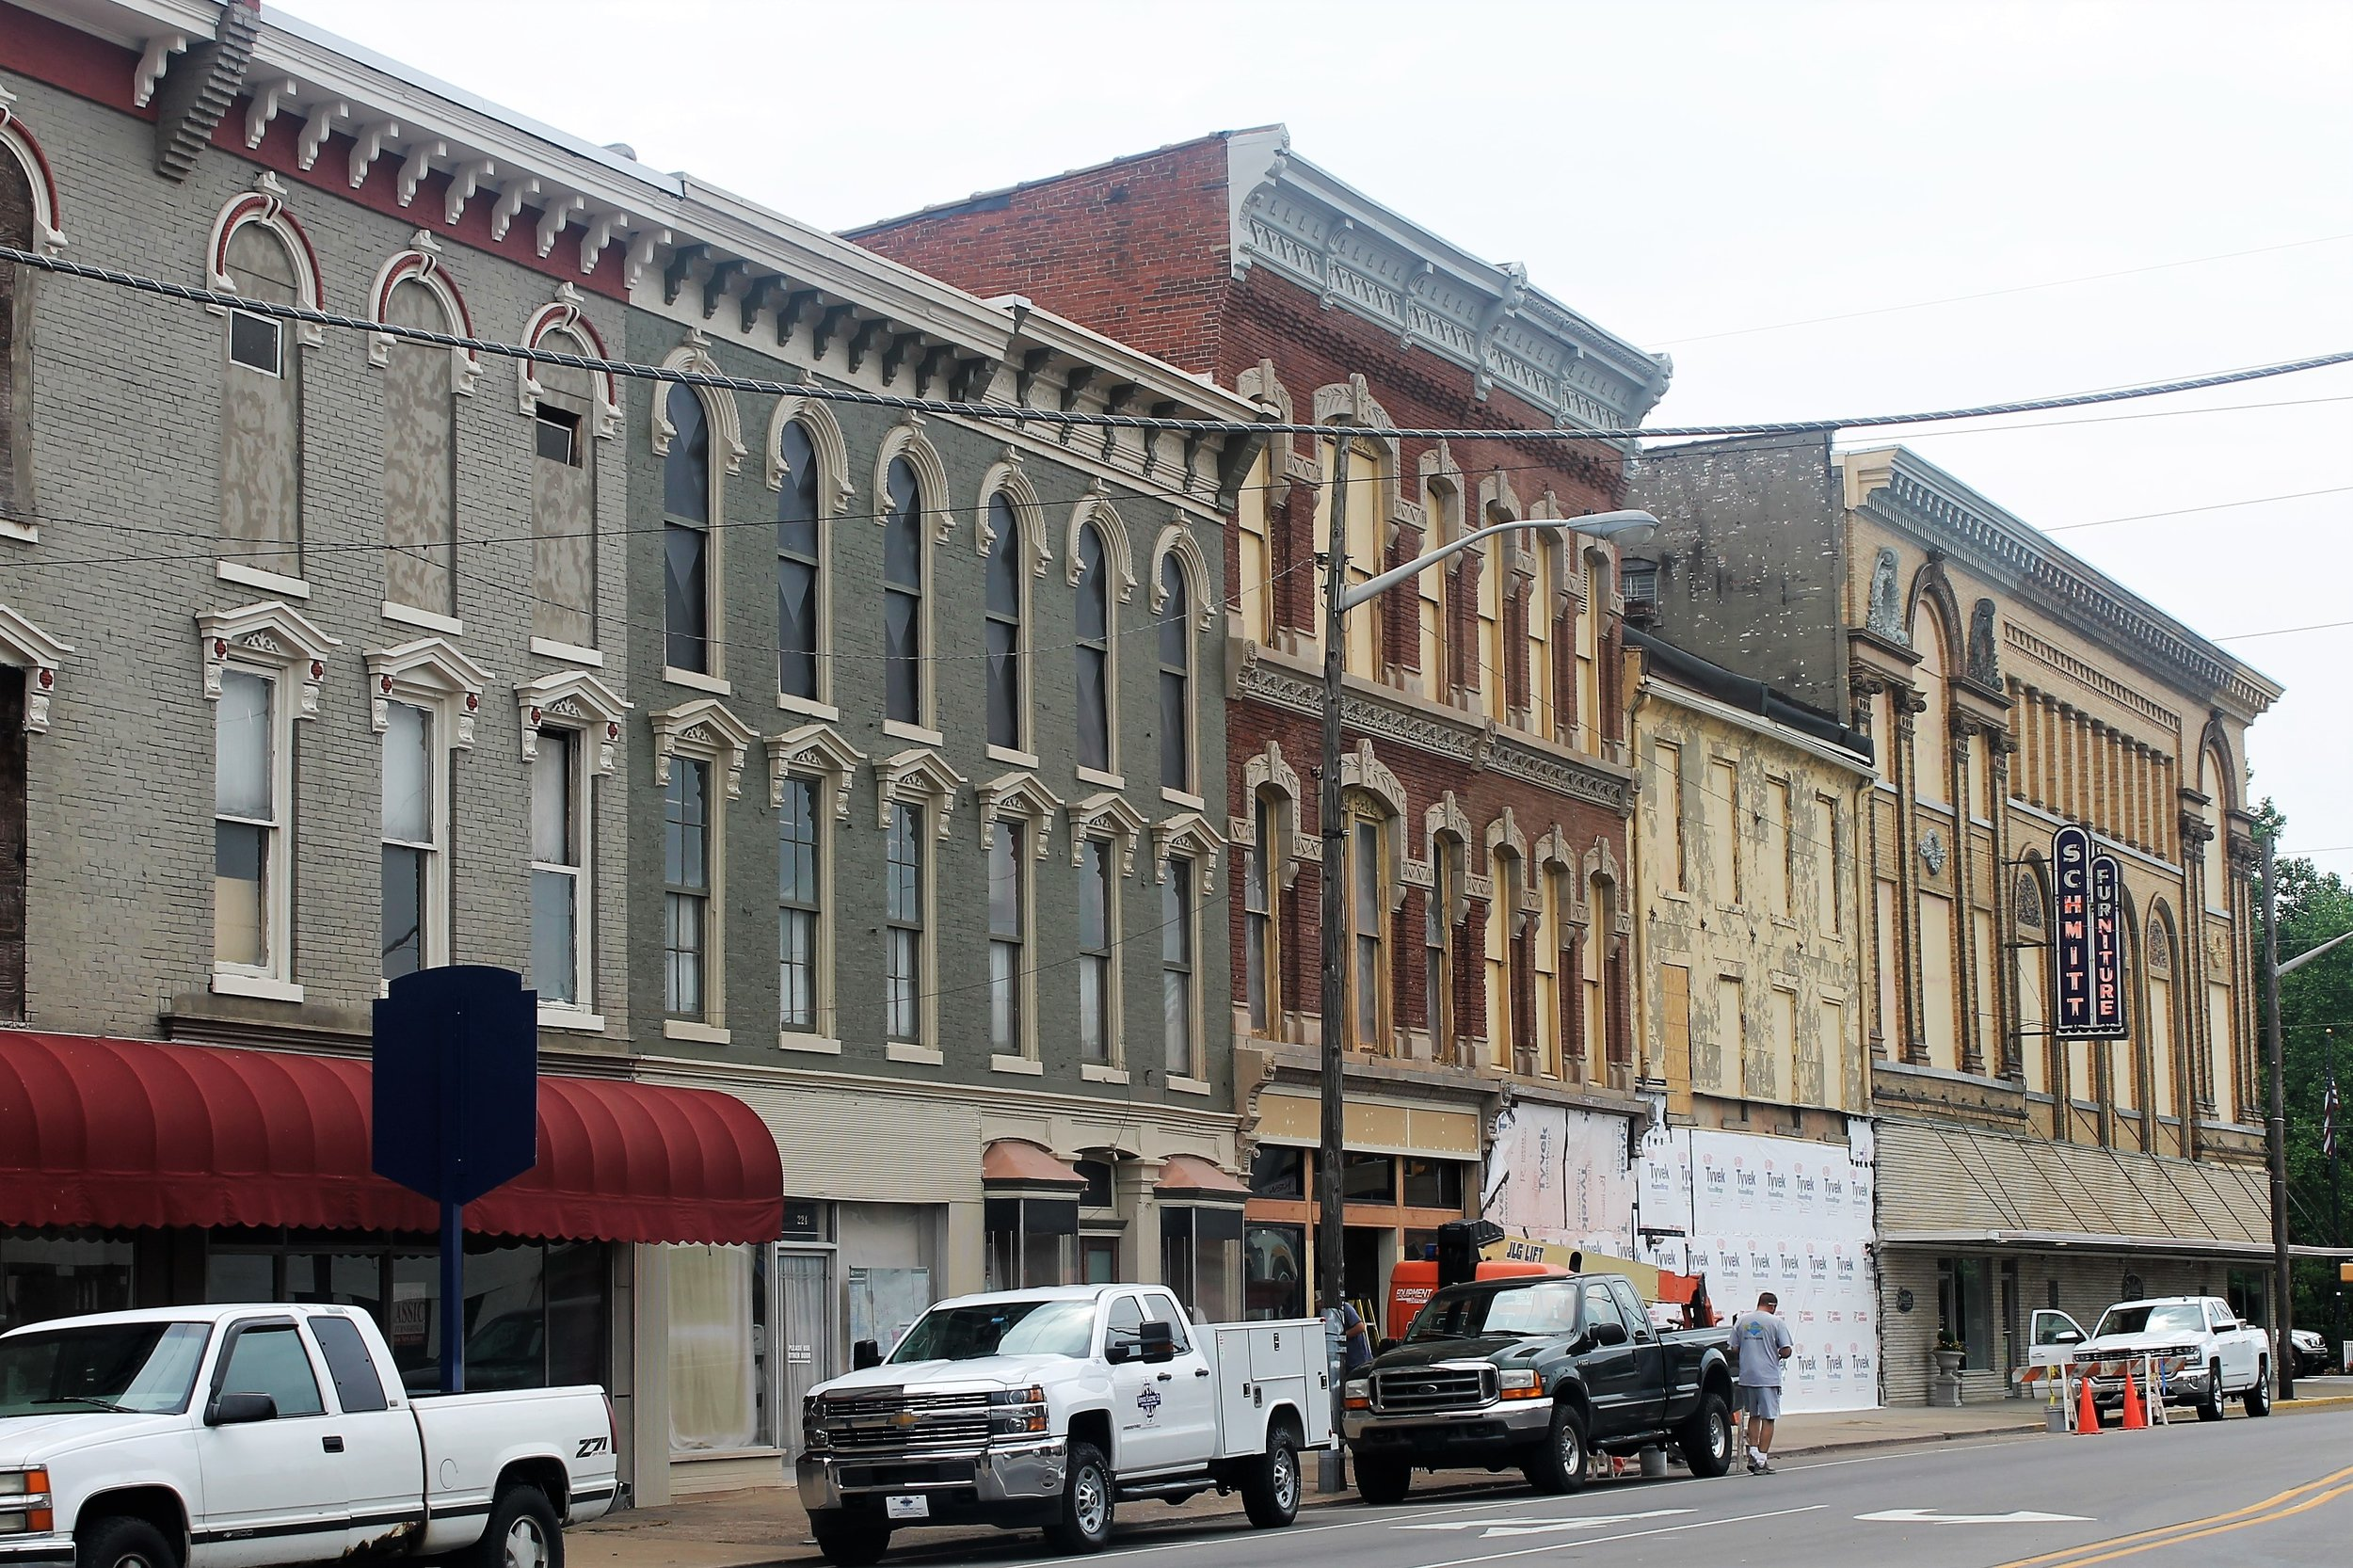 Work is underway at Schmitt Furniture to remove the old paint and improve the facades of multiple buildings along State Street.